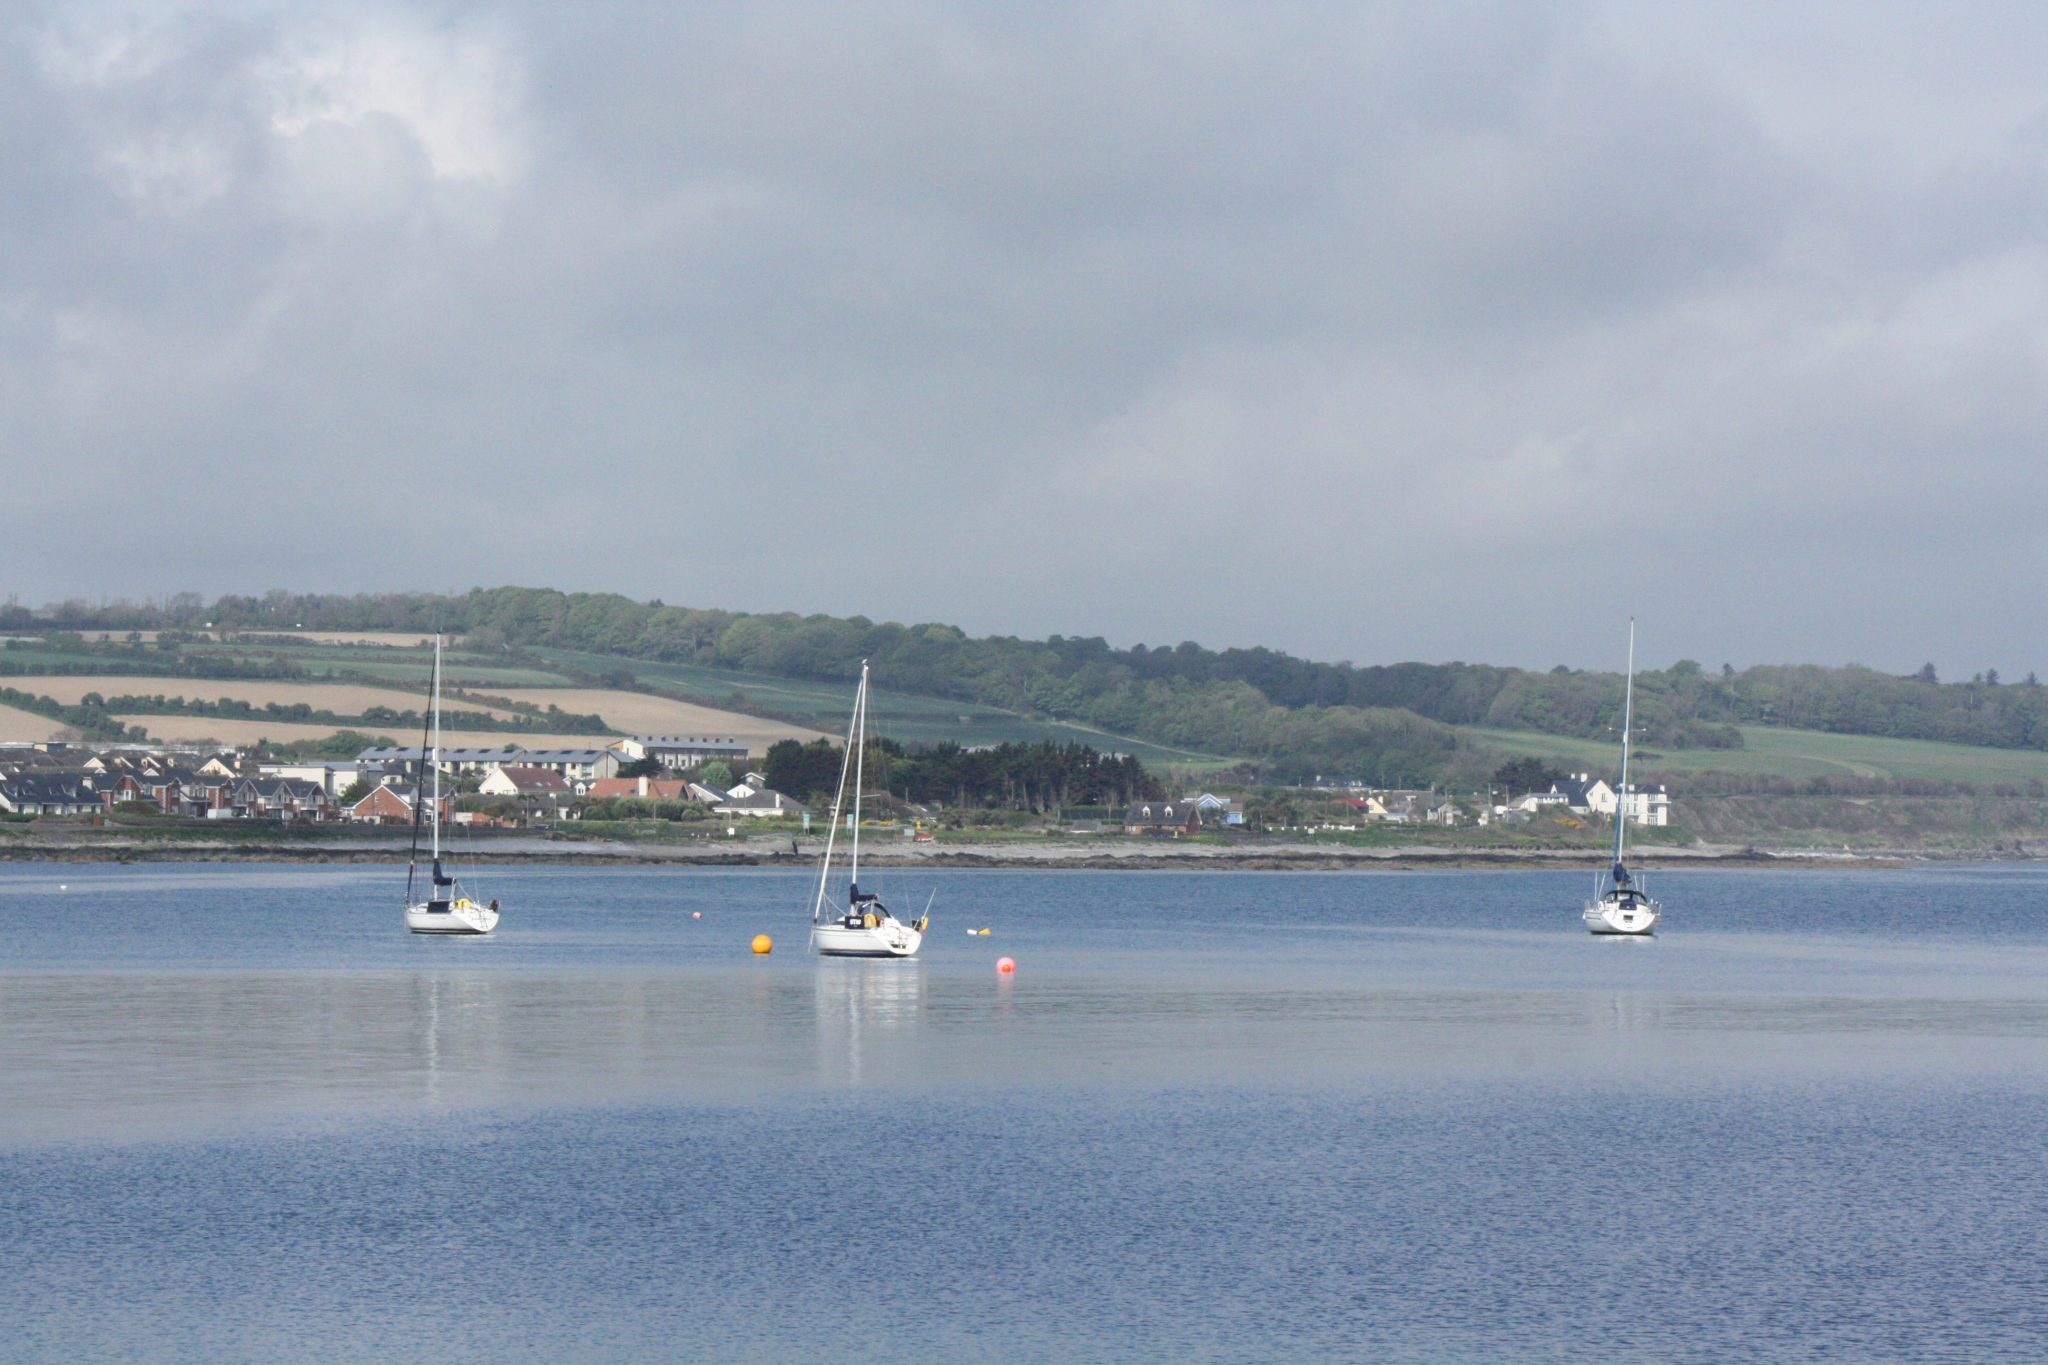 A View of Skerries Harbour by J. Seaver